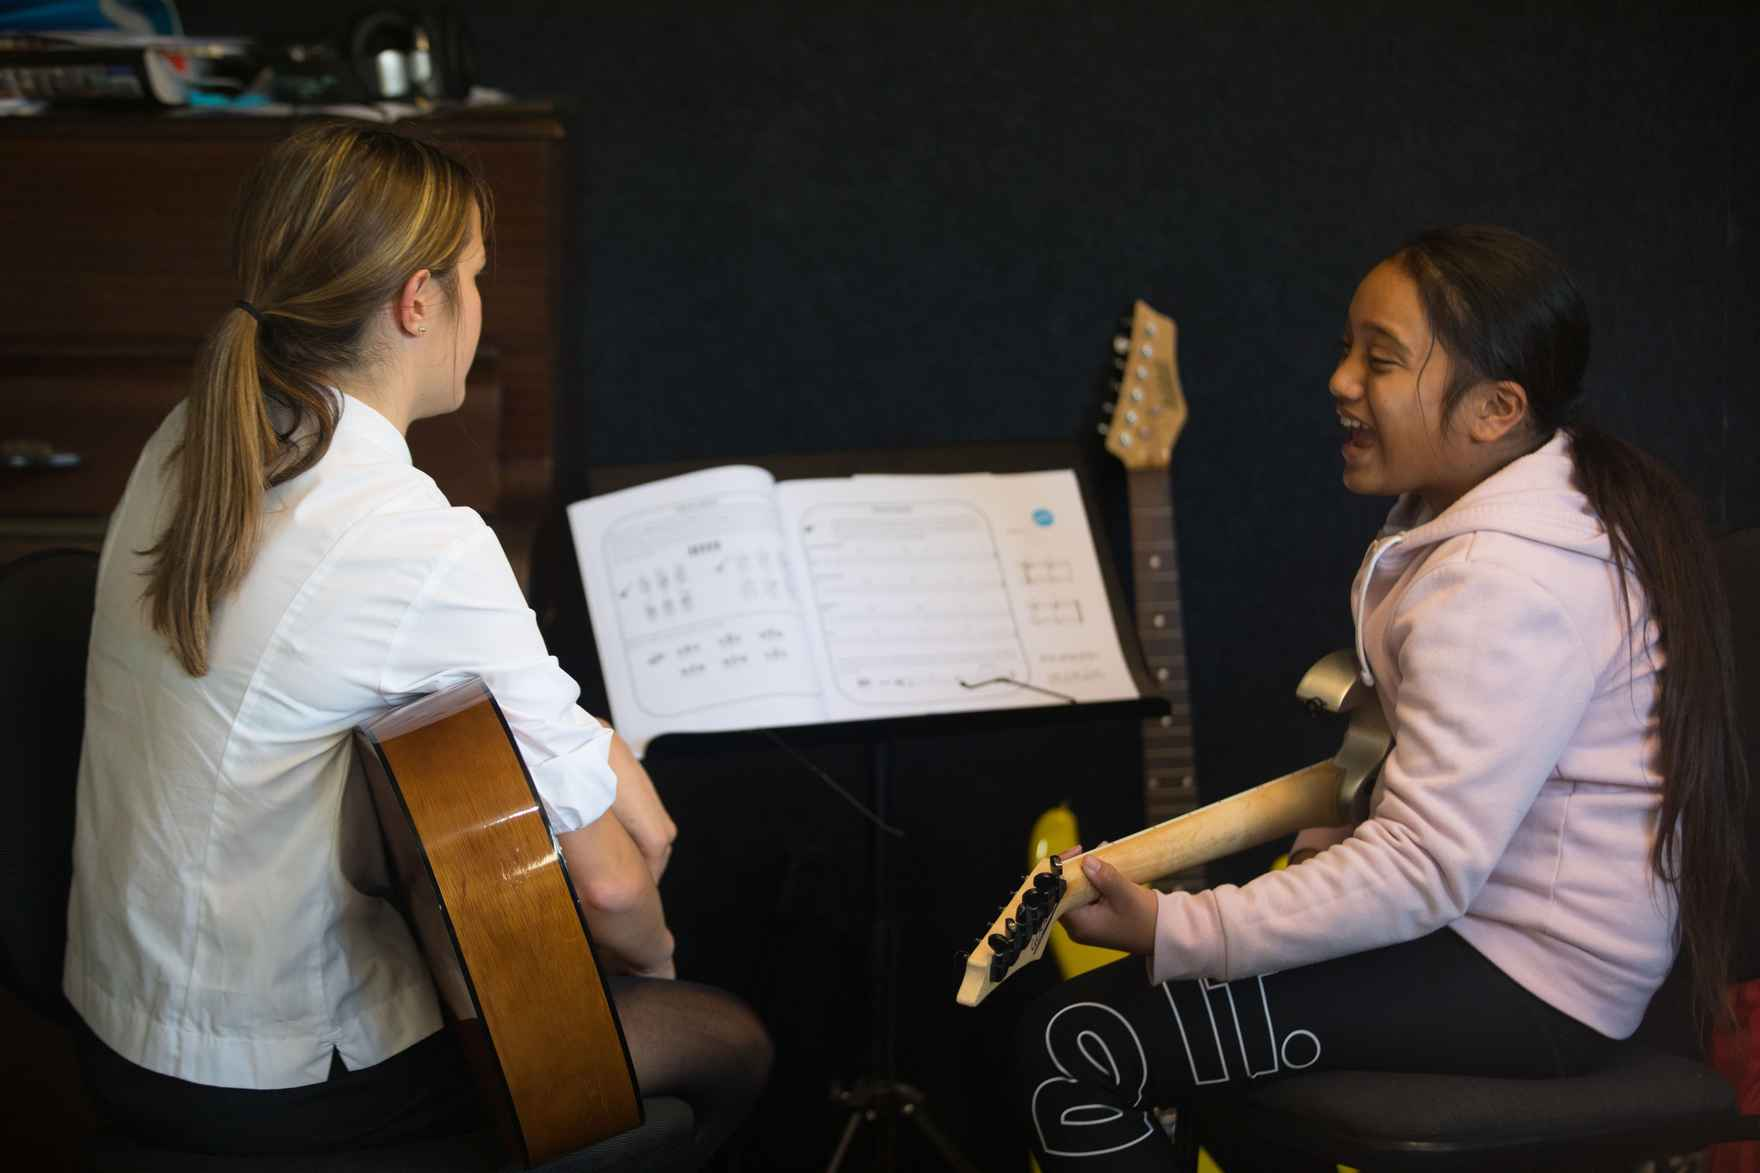 practicing the guitar together